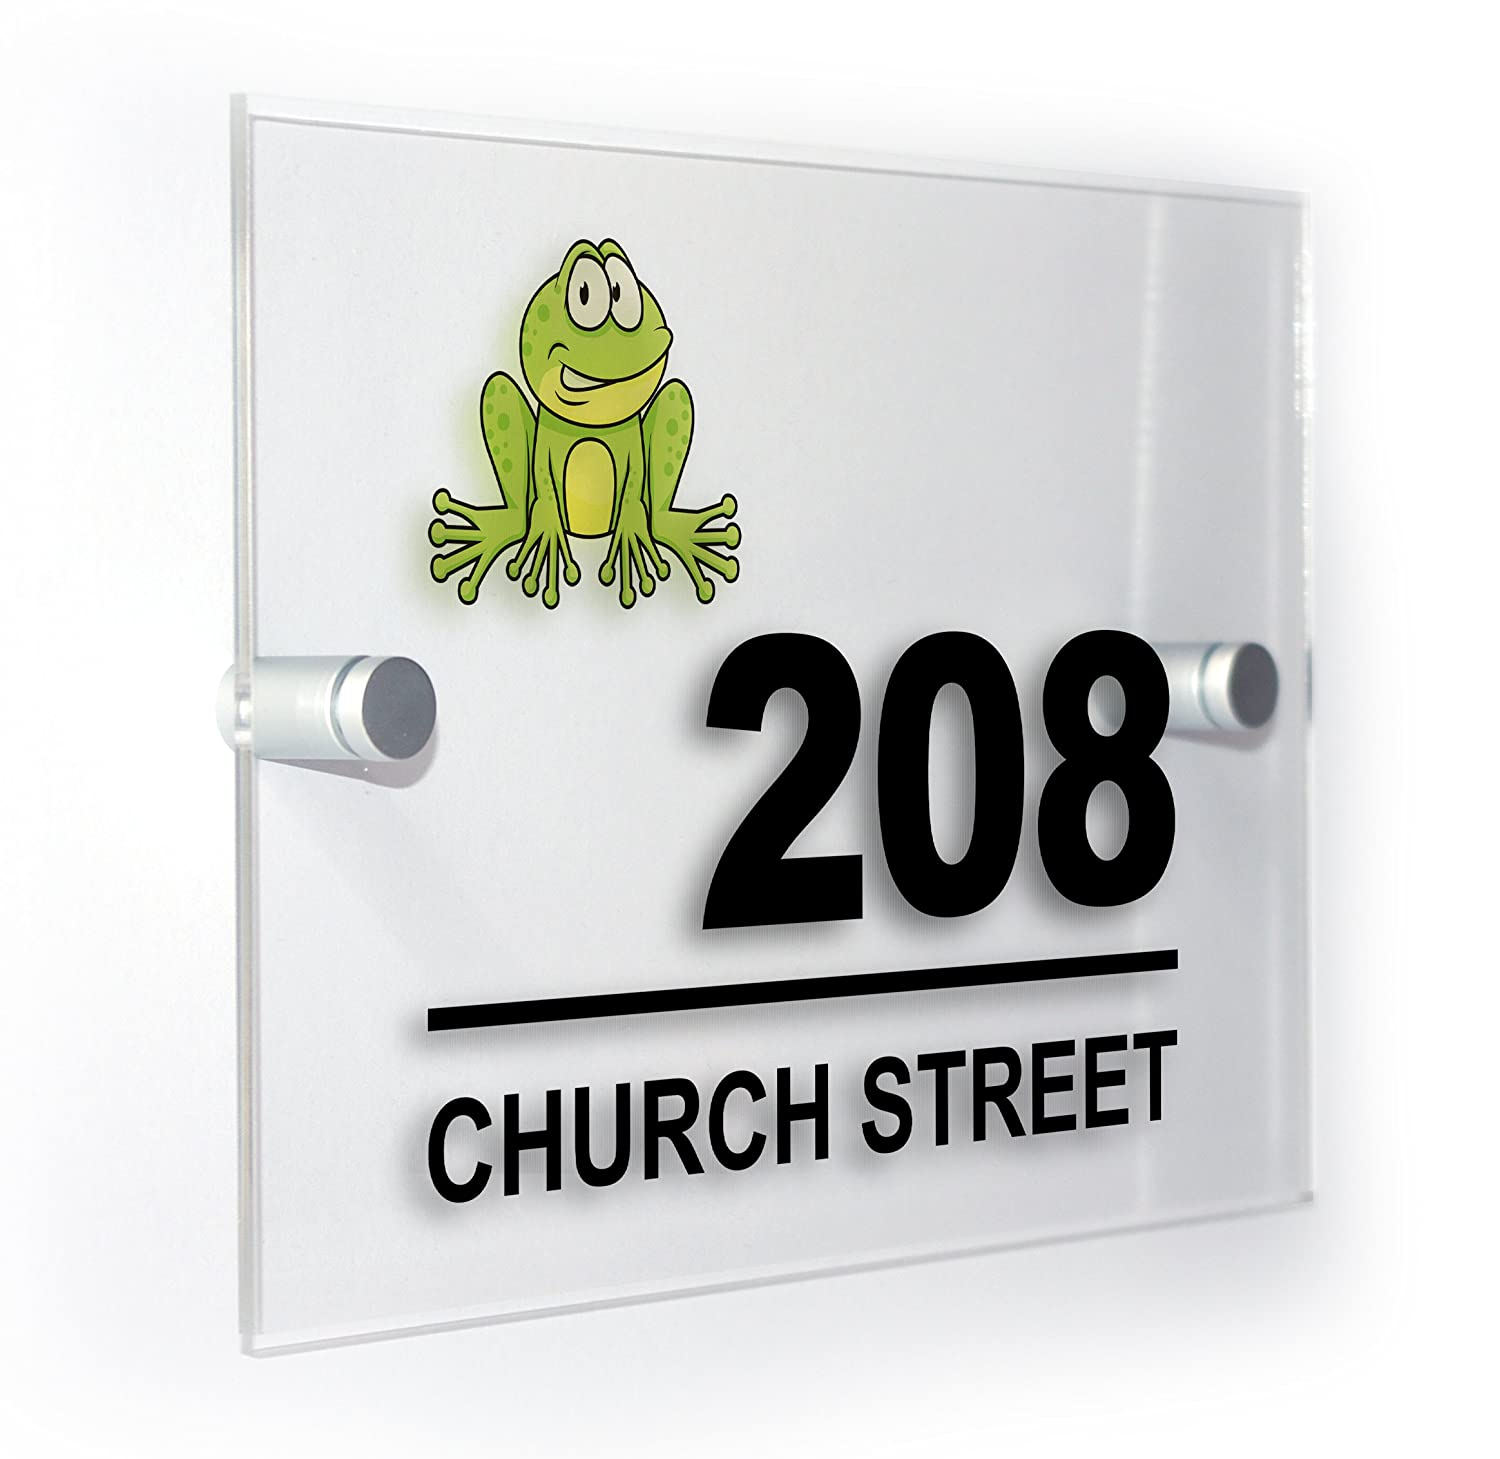 Frog Modern Style Personalised House Flat Number Plaque Full Colour Sign Outdoor Use Weatherproof Market Leading Print Premium Home Plaques